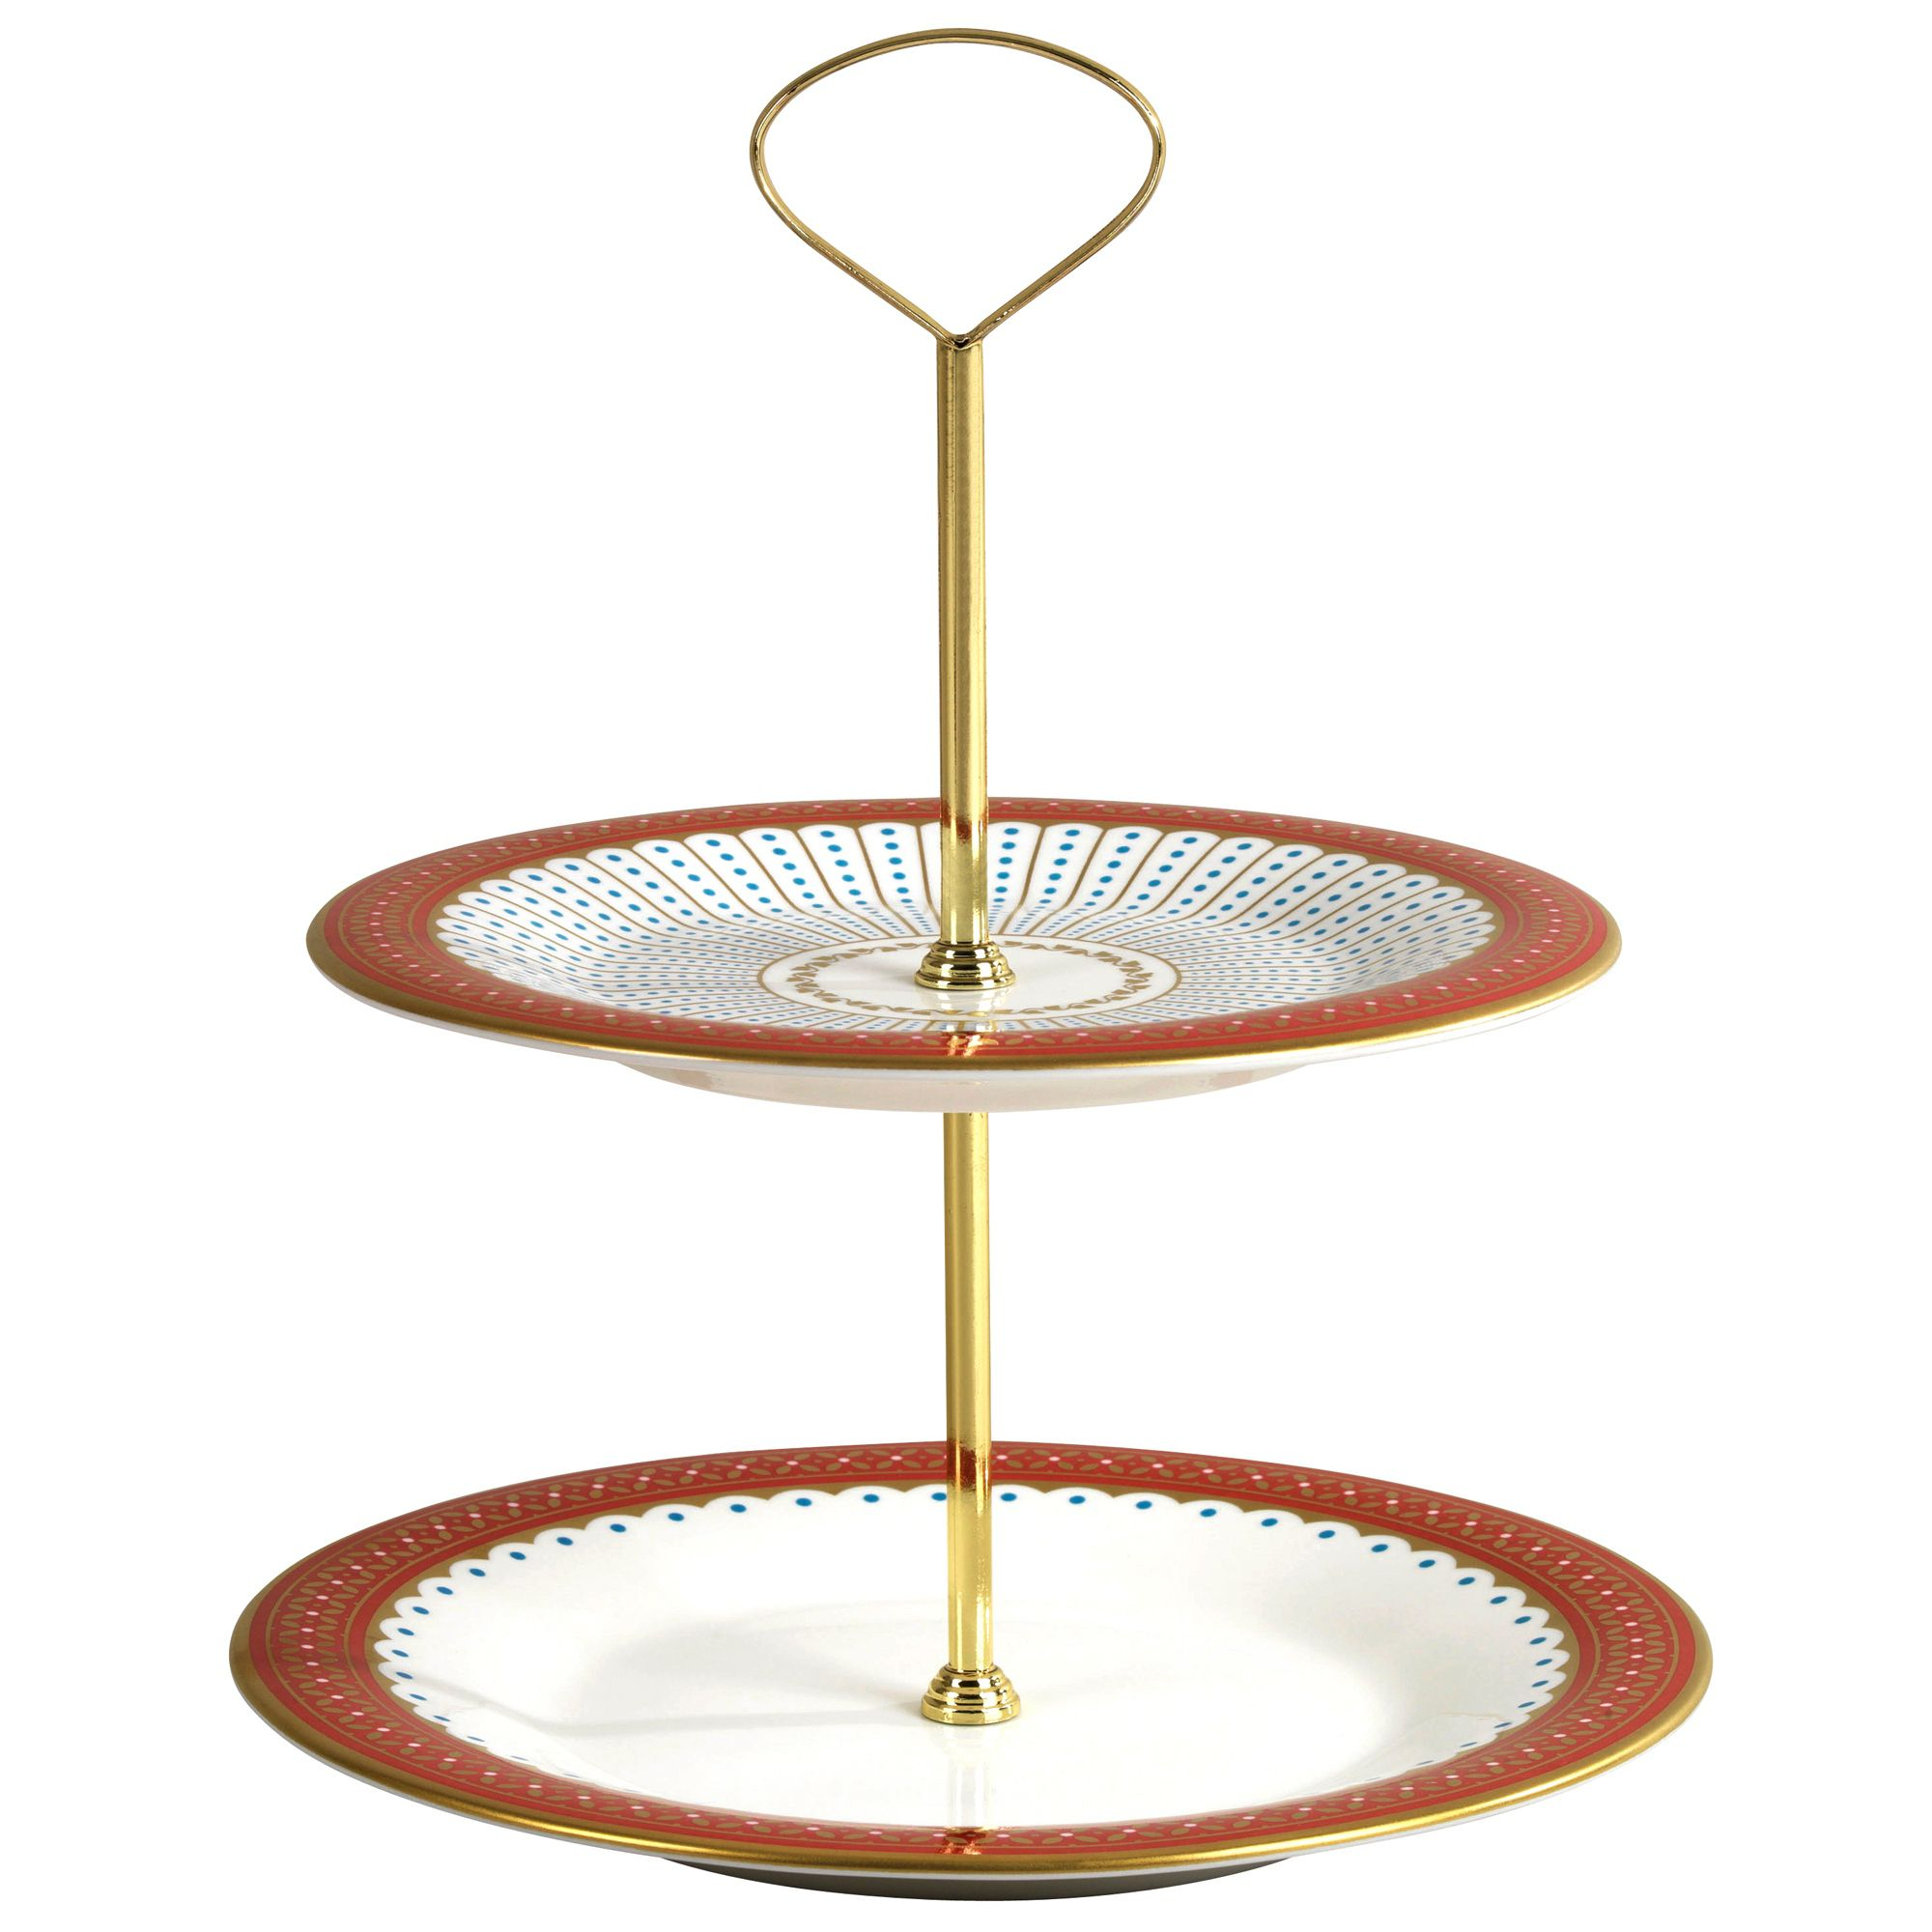 Queen of hearts cake stand